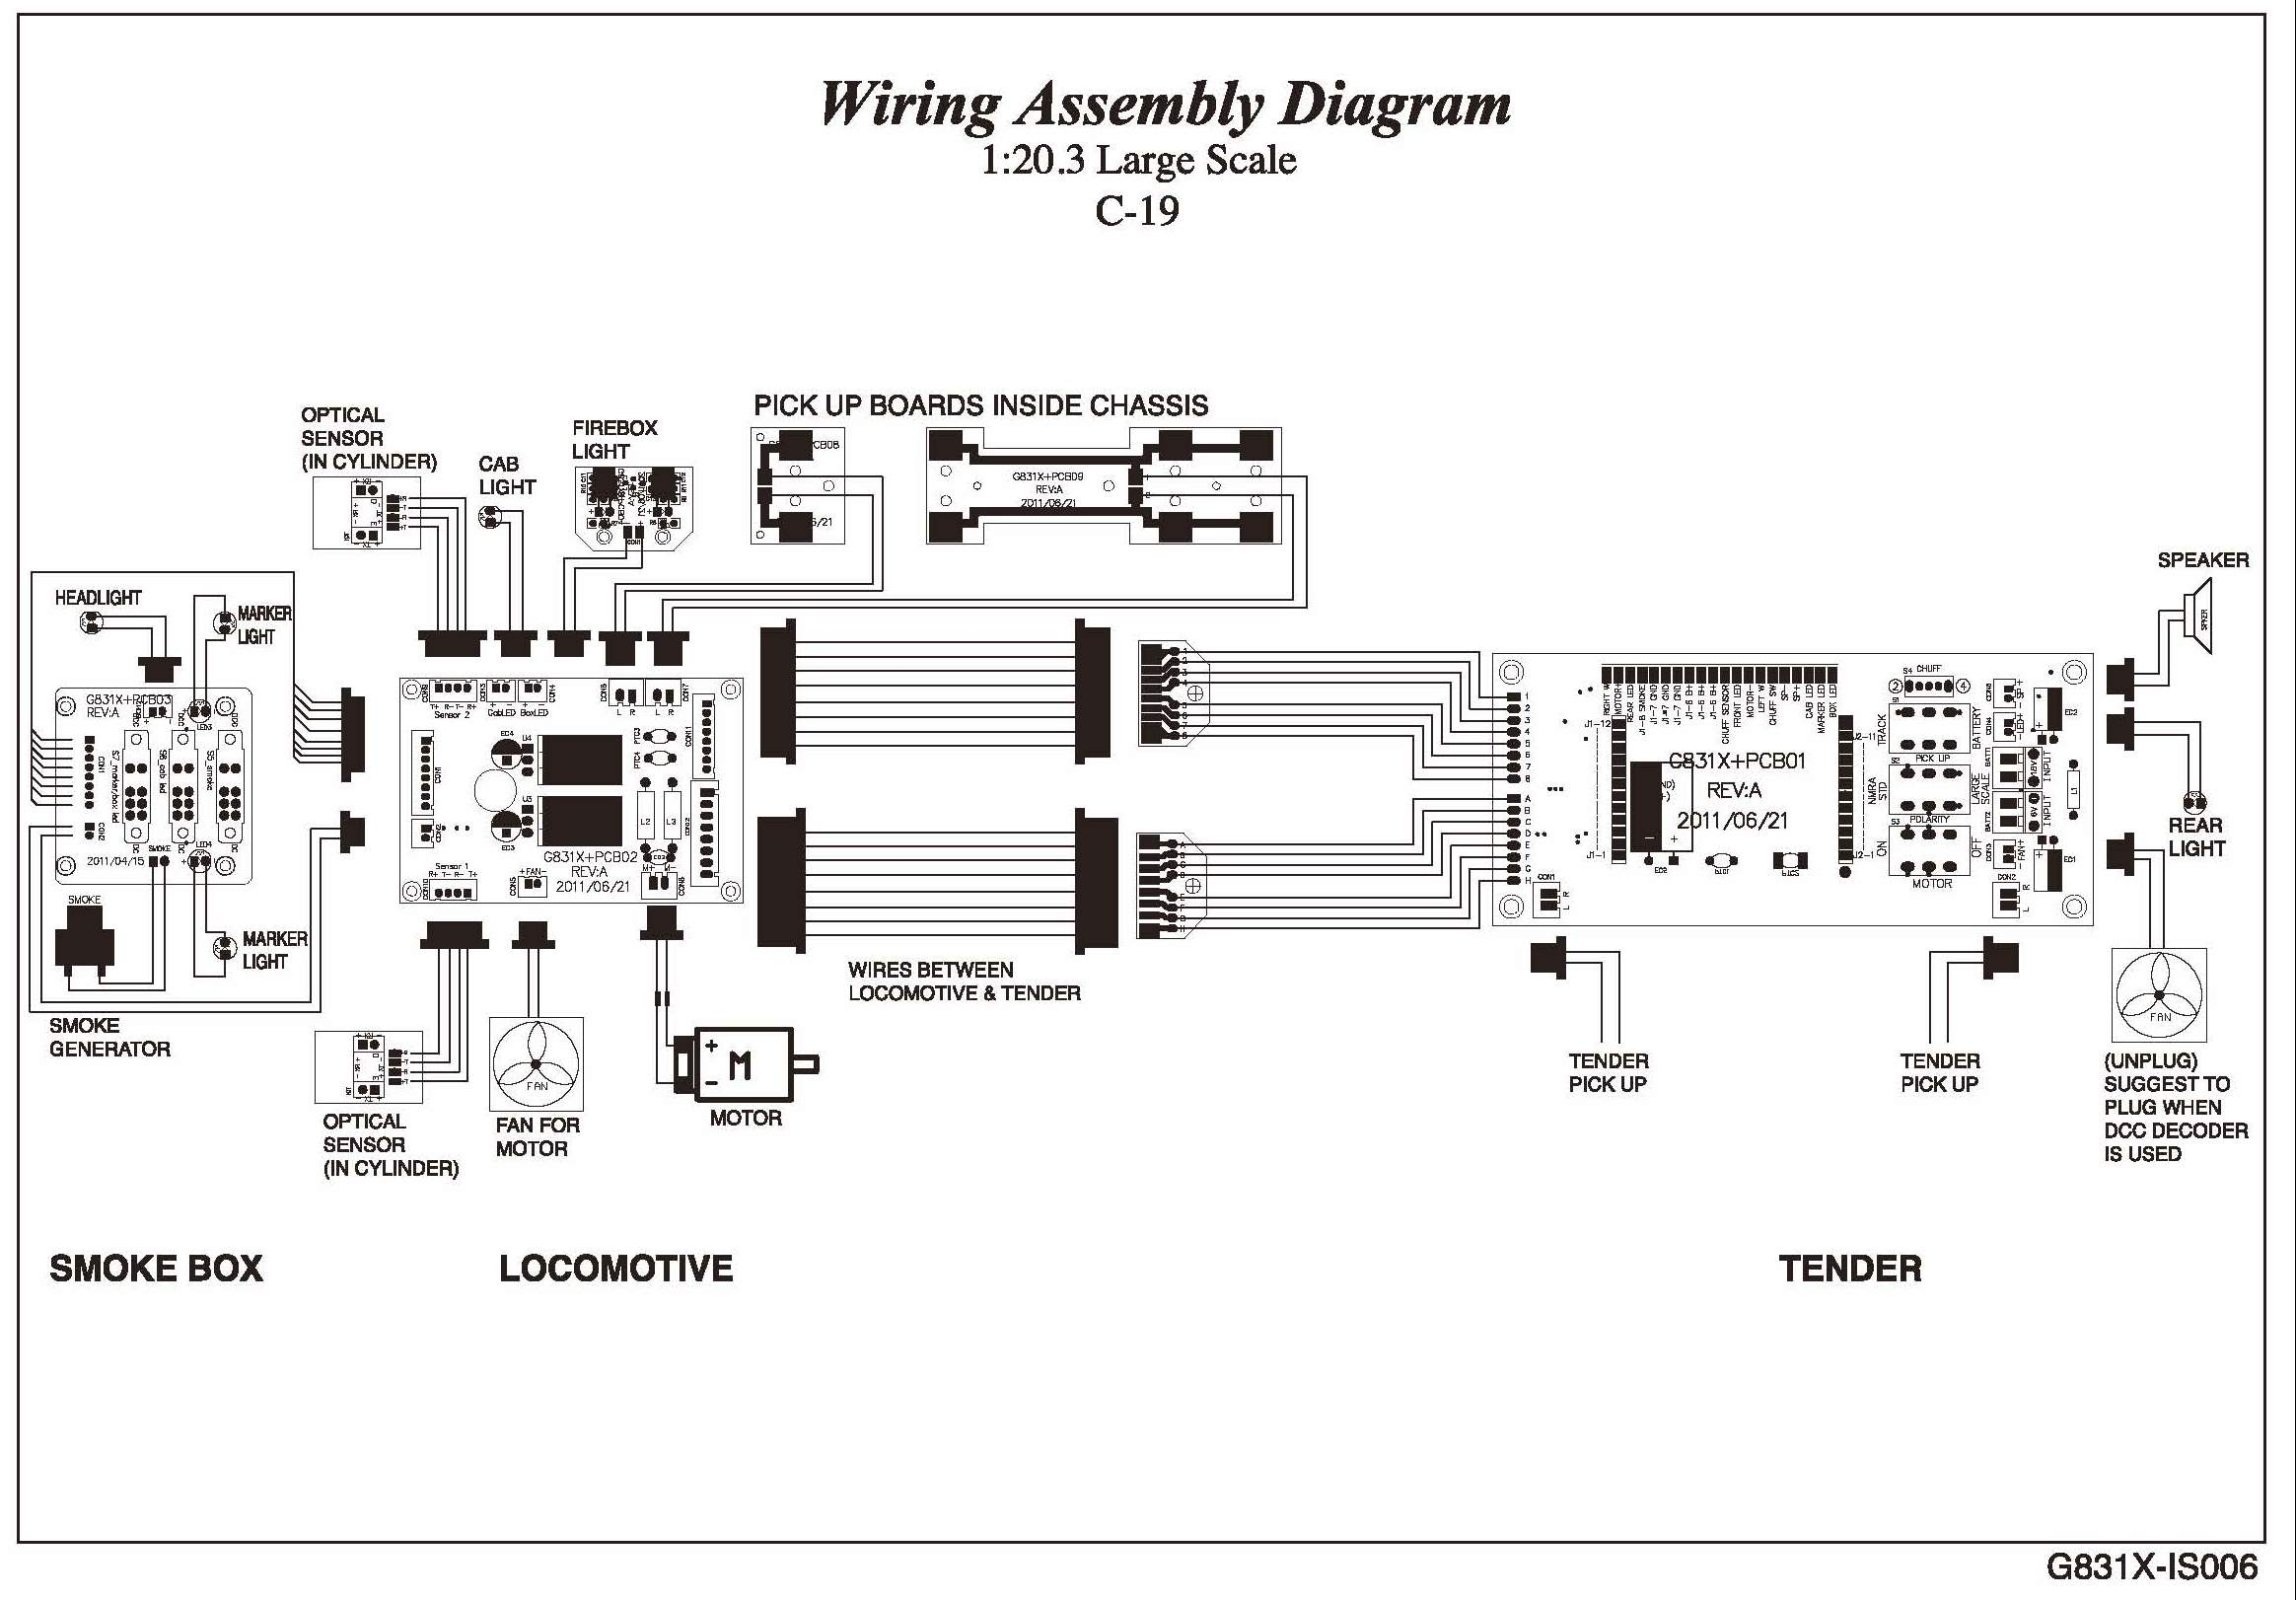 Terrific Bachmann Wiring Diagrams Wiring Diagram Data Wiring 101 Mecadwellnesstrialsorg